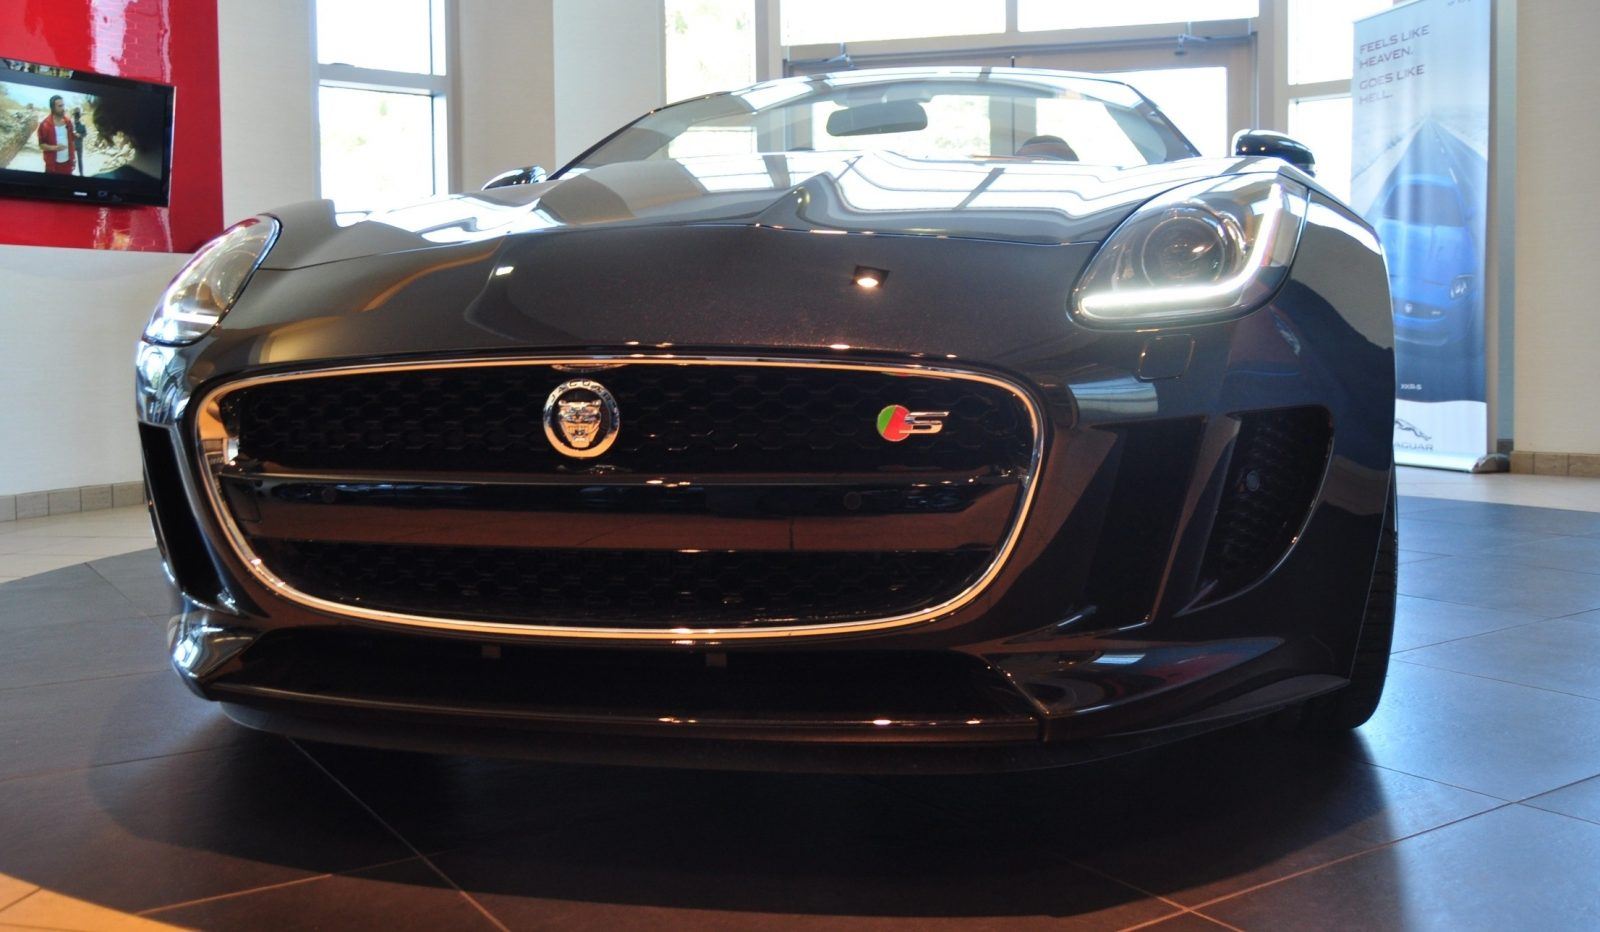 2014 Jaguar F-type S Cabrio - LED Lighting Demo and 60 High-Res Photos33